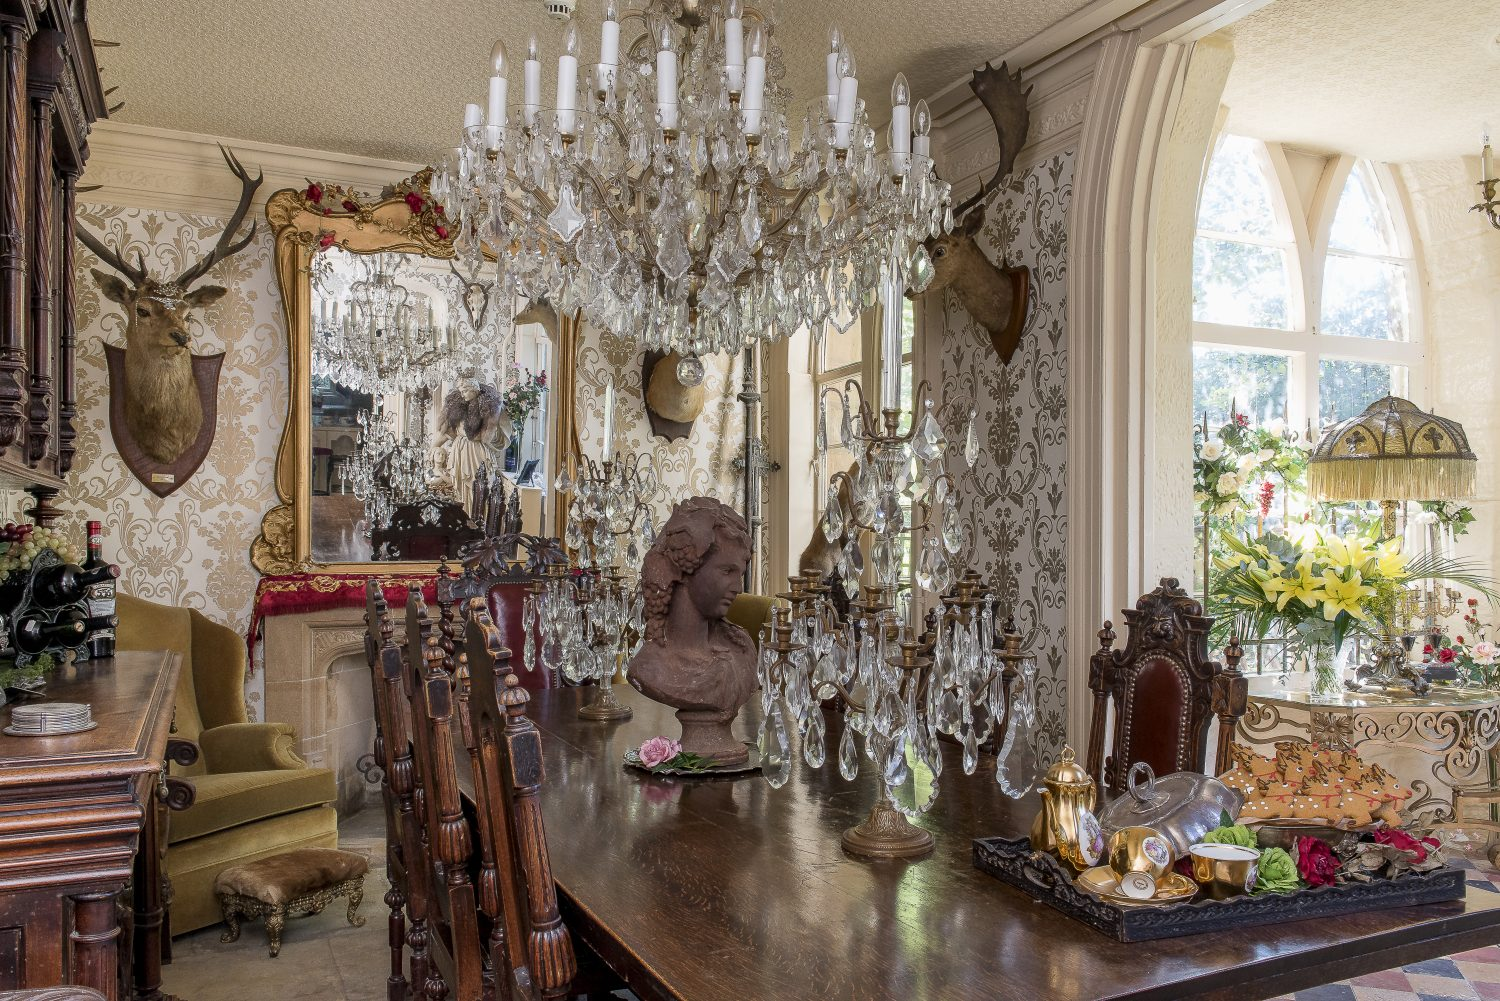 The enormous chandelier in the dining room is from Hastings Antiques Centre in Norman Road, St Leonards. The table was bought at an auction and the chairs from an antiques shop in Hastings Old Town. The gingerbread reindeer are from Judges Bakery, also in Hastings Old Town